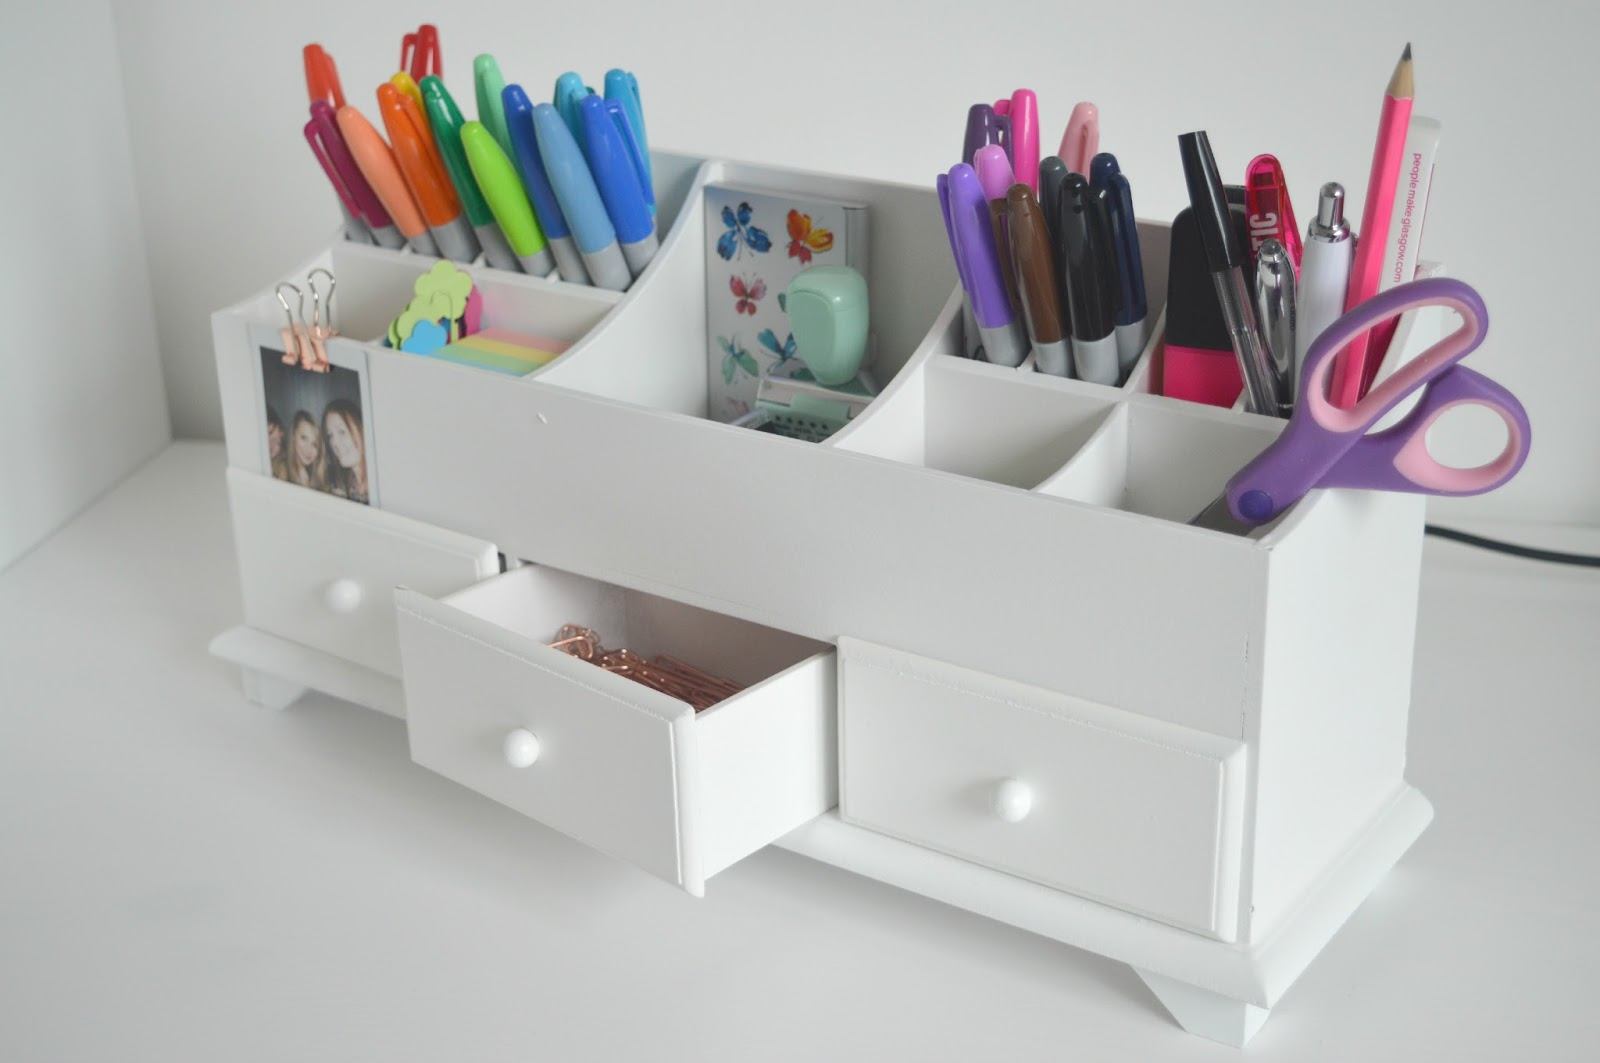 Desk organising for stationery geeks new girl in toon - Desk stationery organiser ...